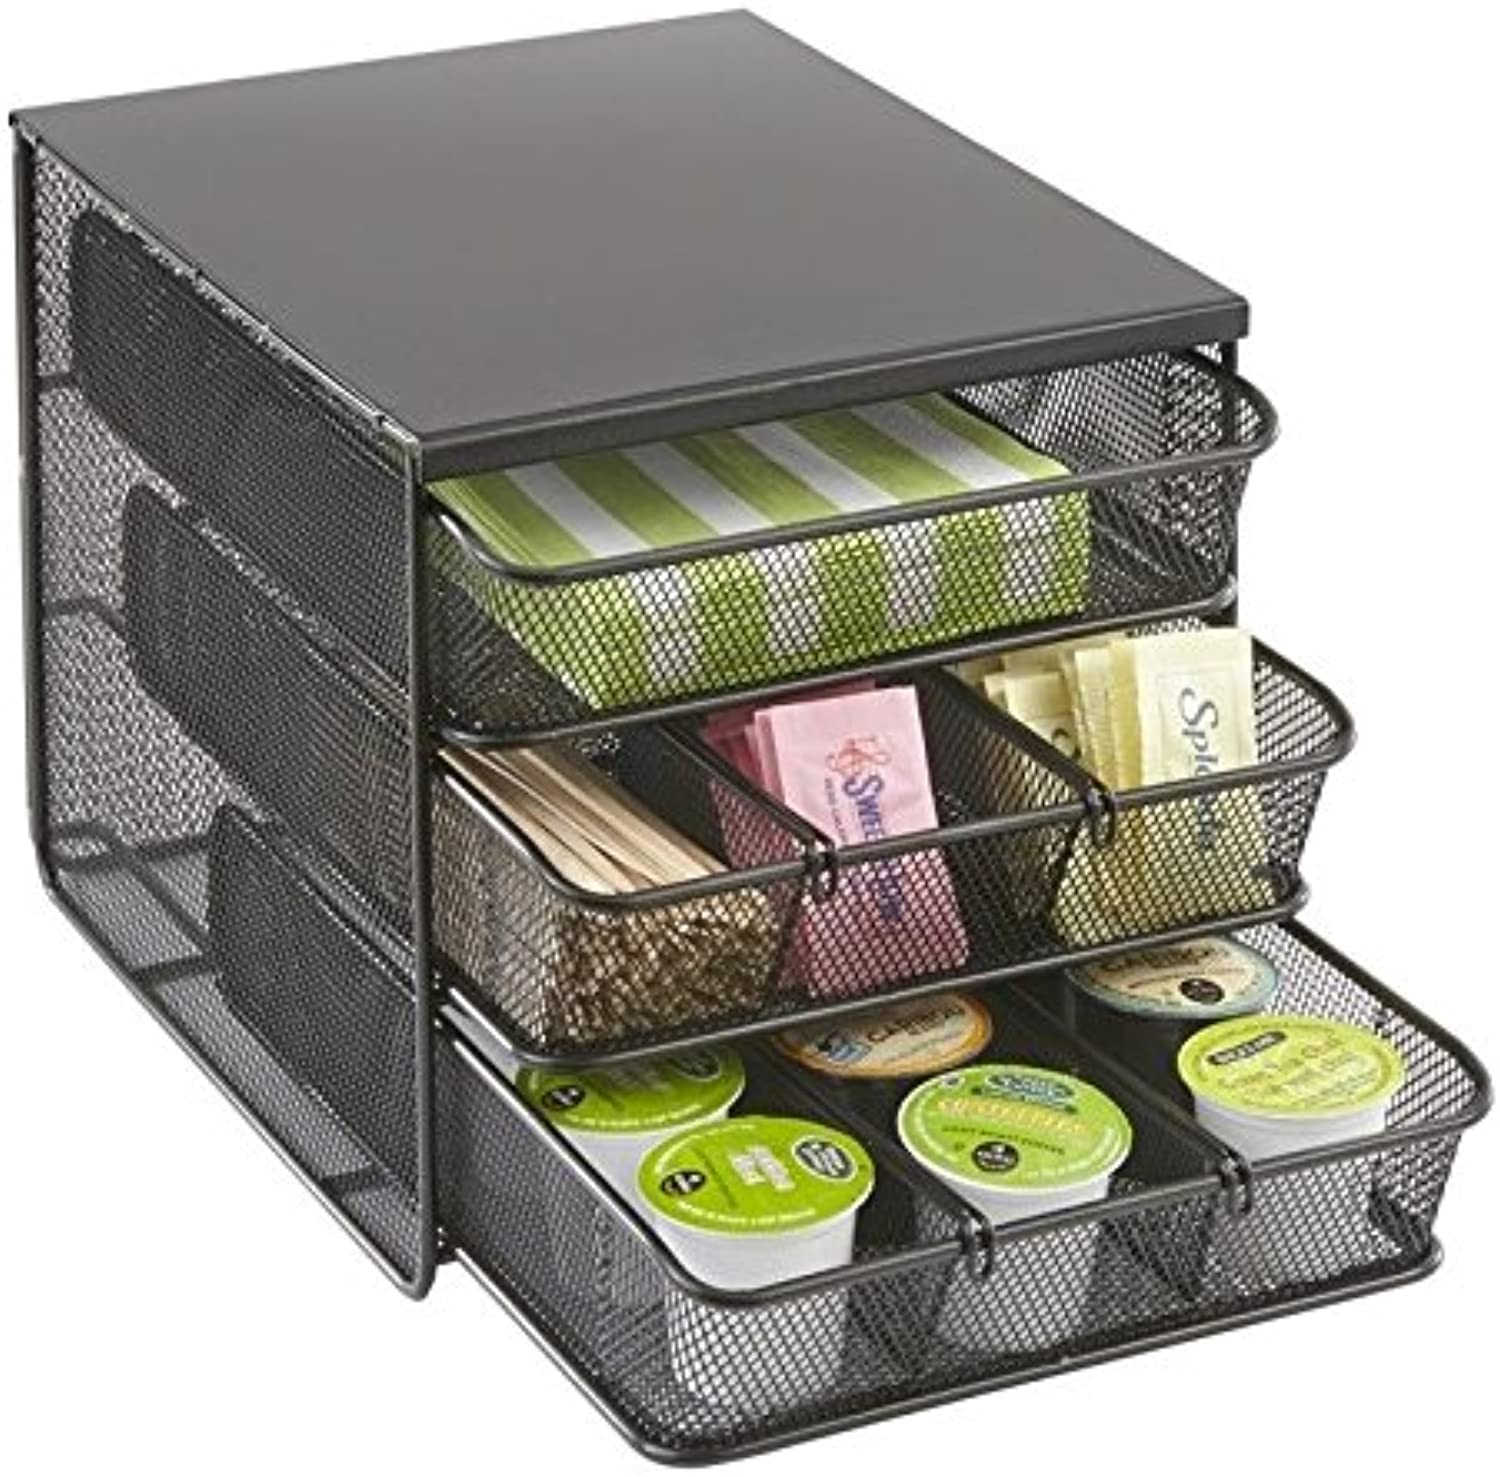 Pemberly Row 3 Drawer Hospitality Organizer in Black